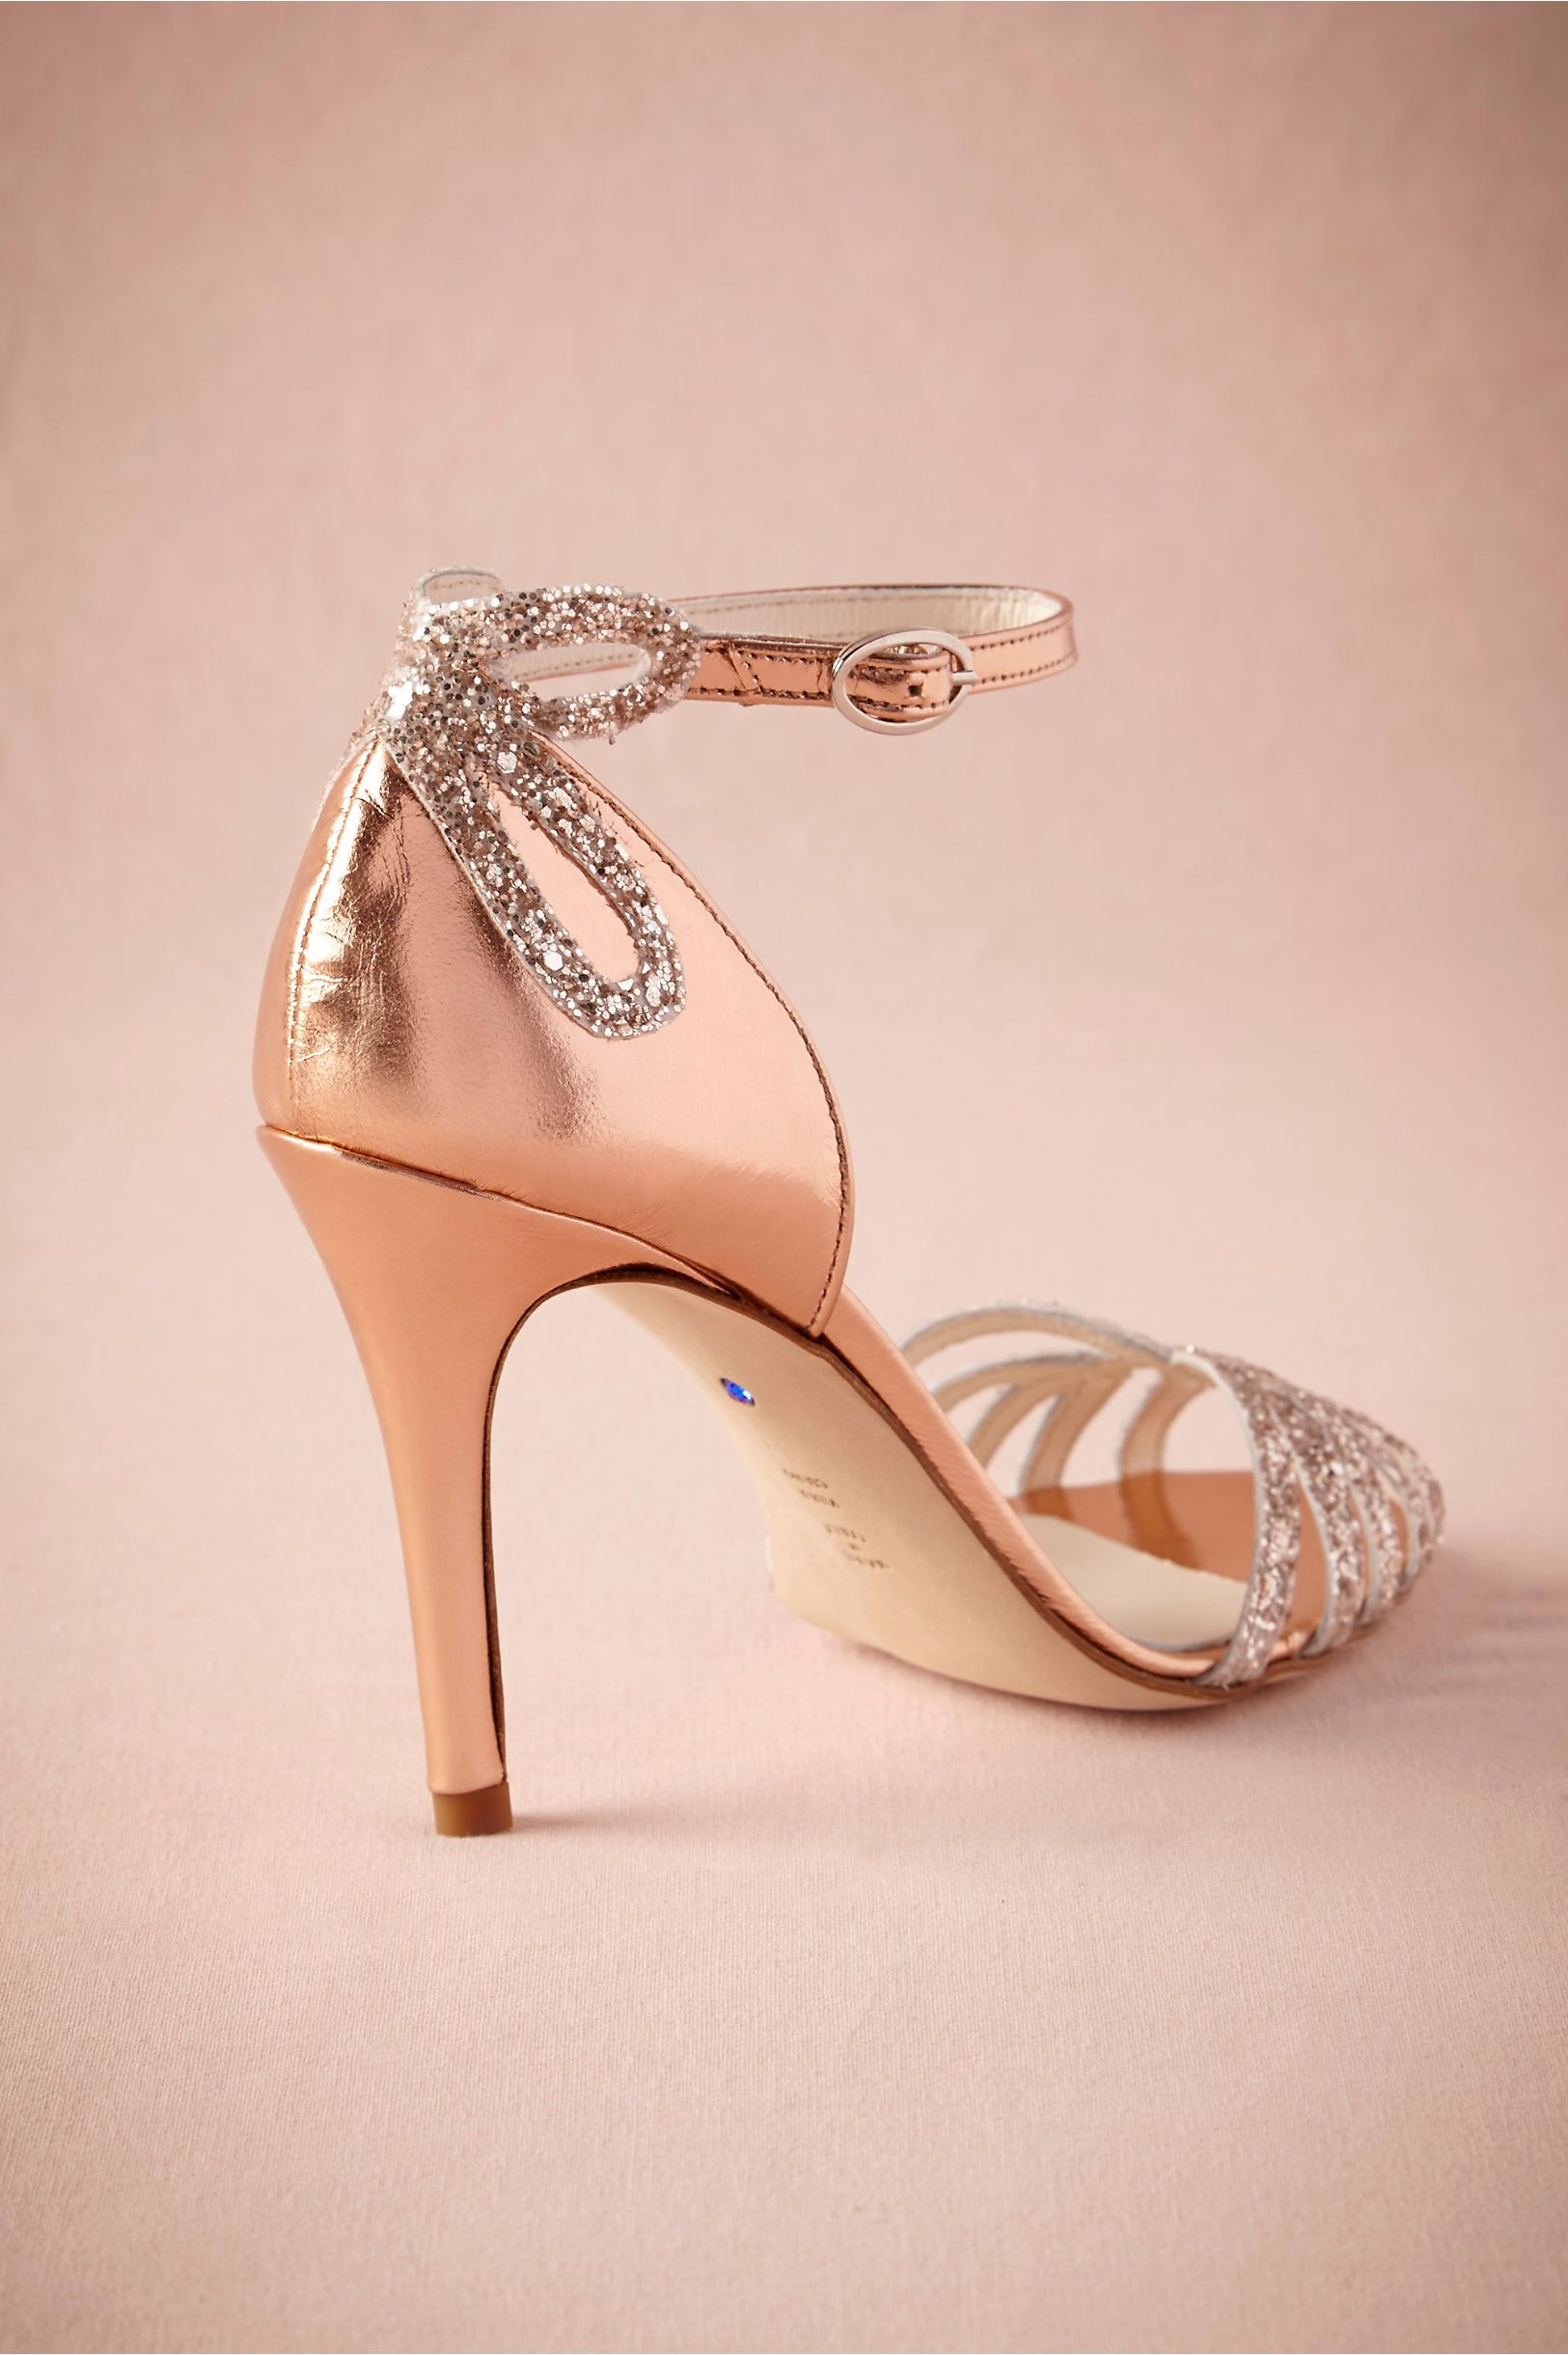 Rose Gold Glittered Heels In Shoes U0026 Accessories Shoes At BHLDN. Flat Bridal  ...